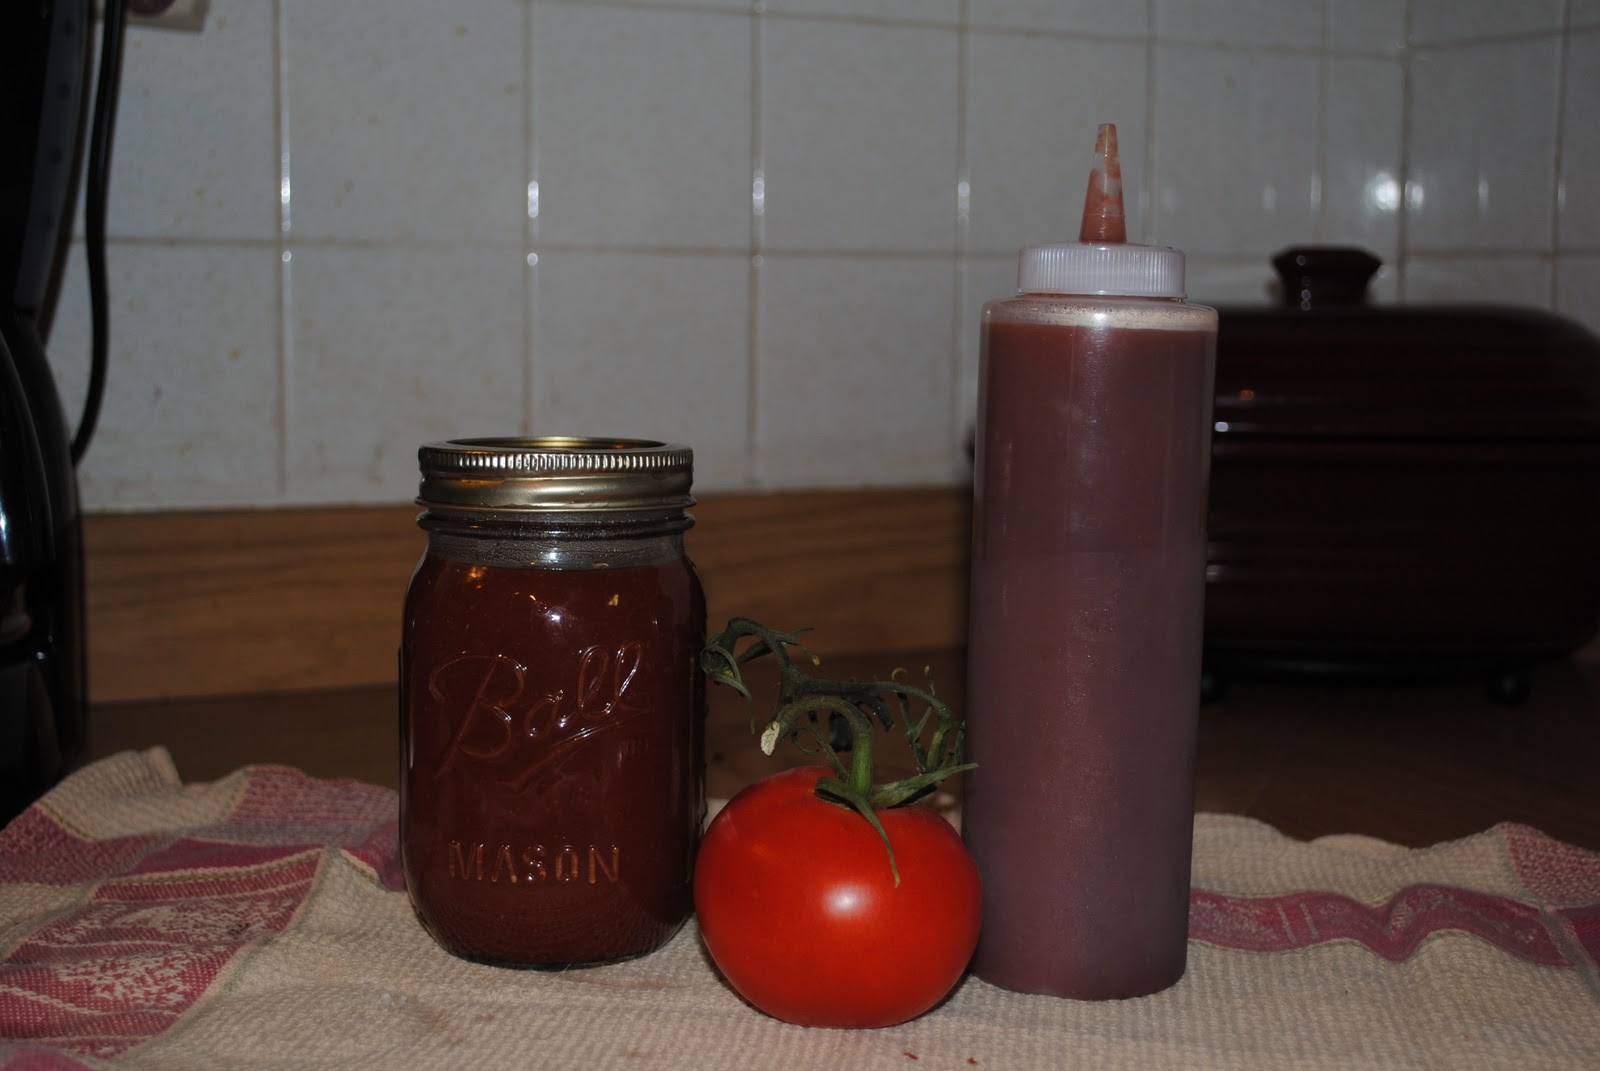 My Old Kentucky Homestead: Homemade ketchup